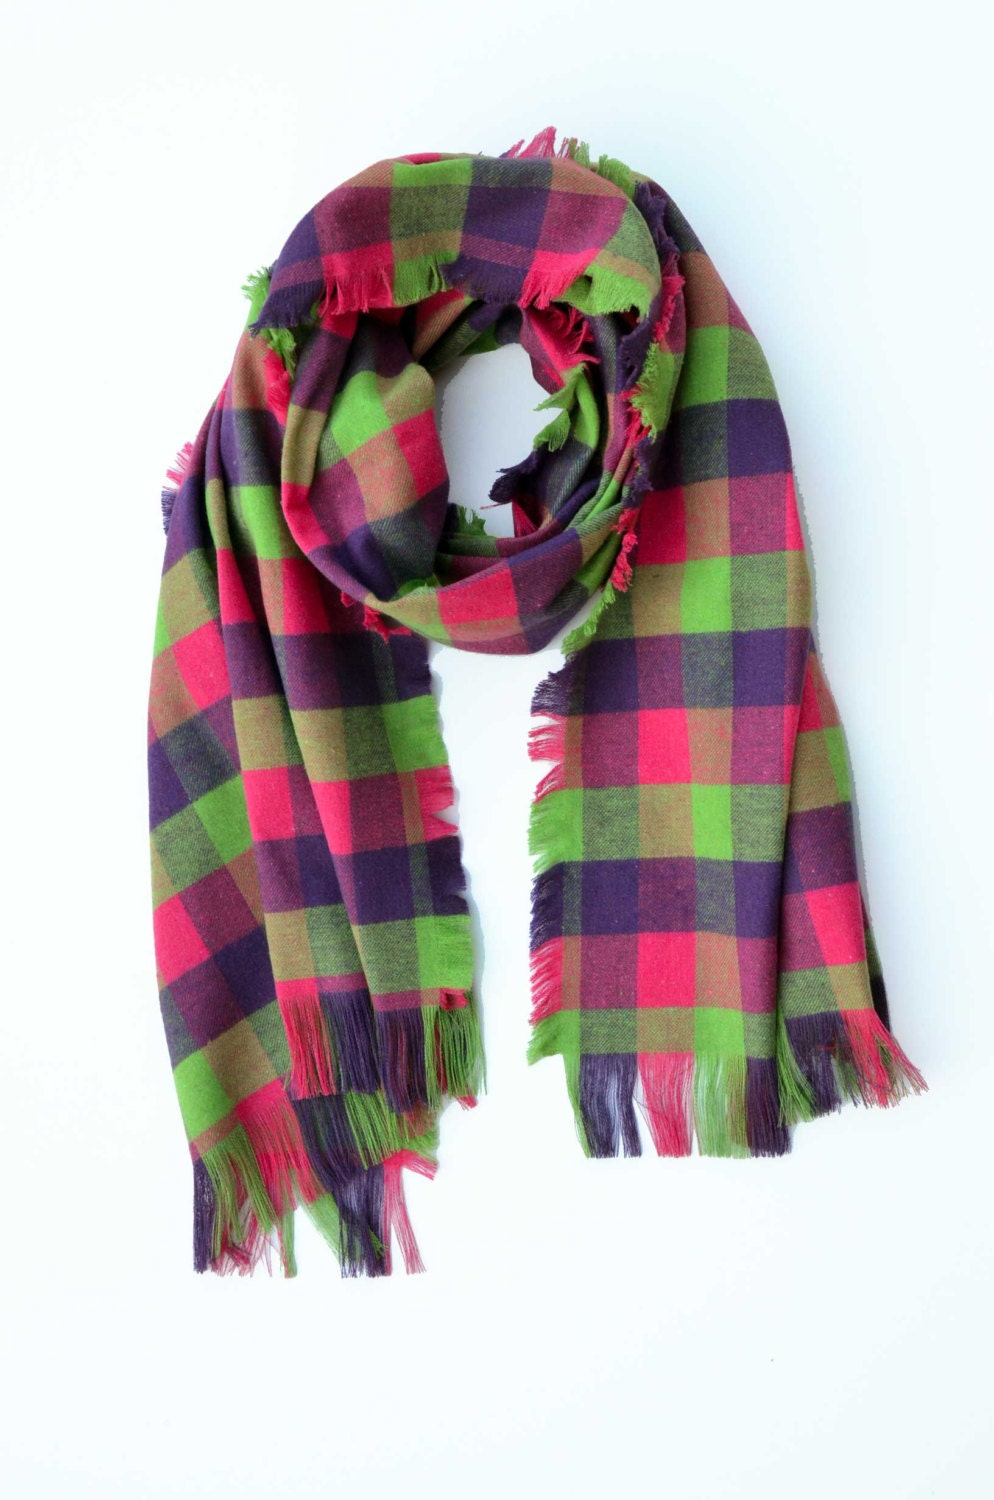 Tartan scarf blanket scarf oversized scarf gift for her girlfriend giftplaid wrap pink green purple flannel cool girlfriend gift